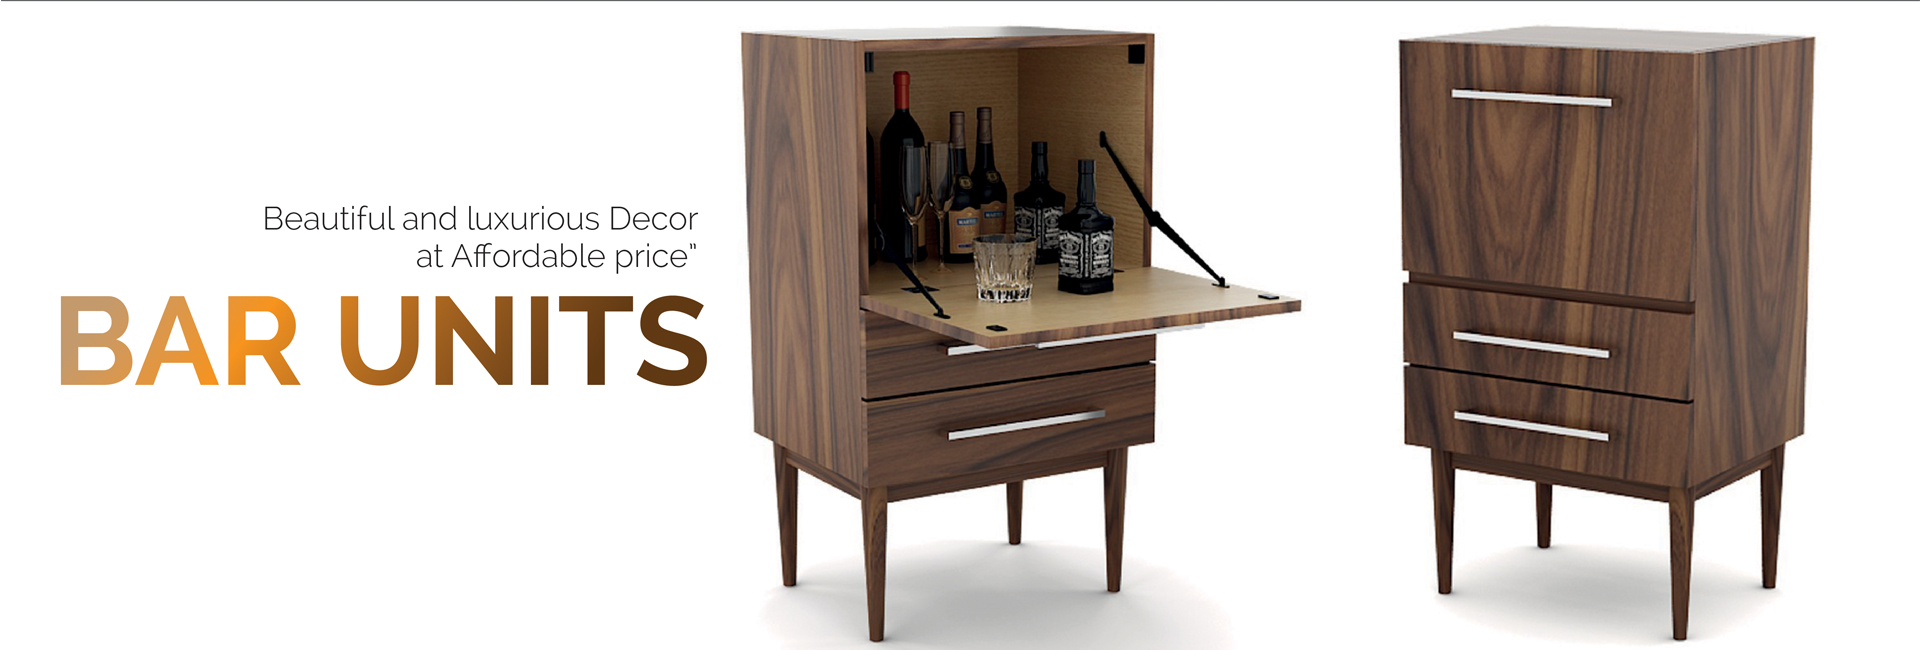 Buy Bar Cabinet For Home Bar Unit Furniture Home Bar Cabinet Online